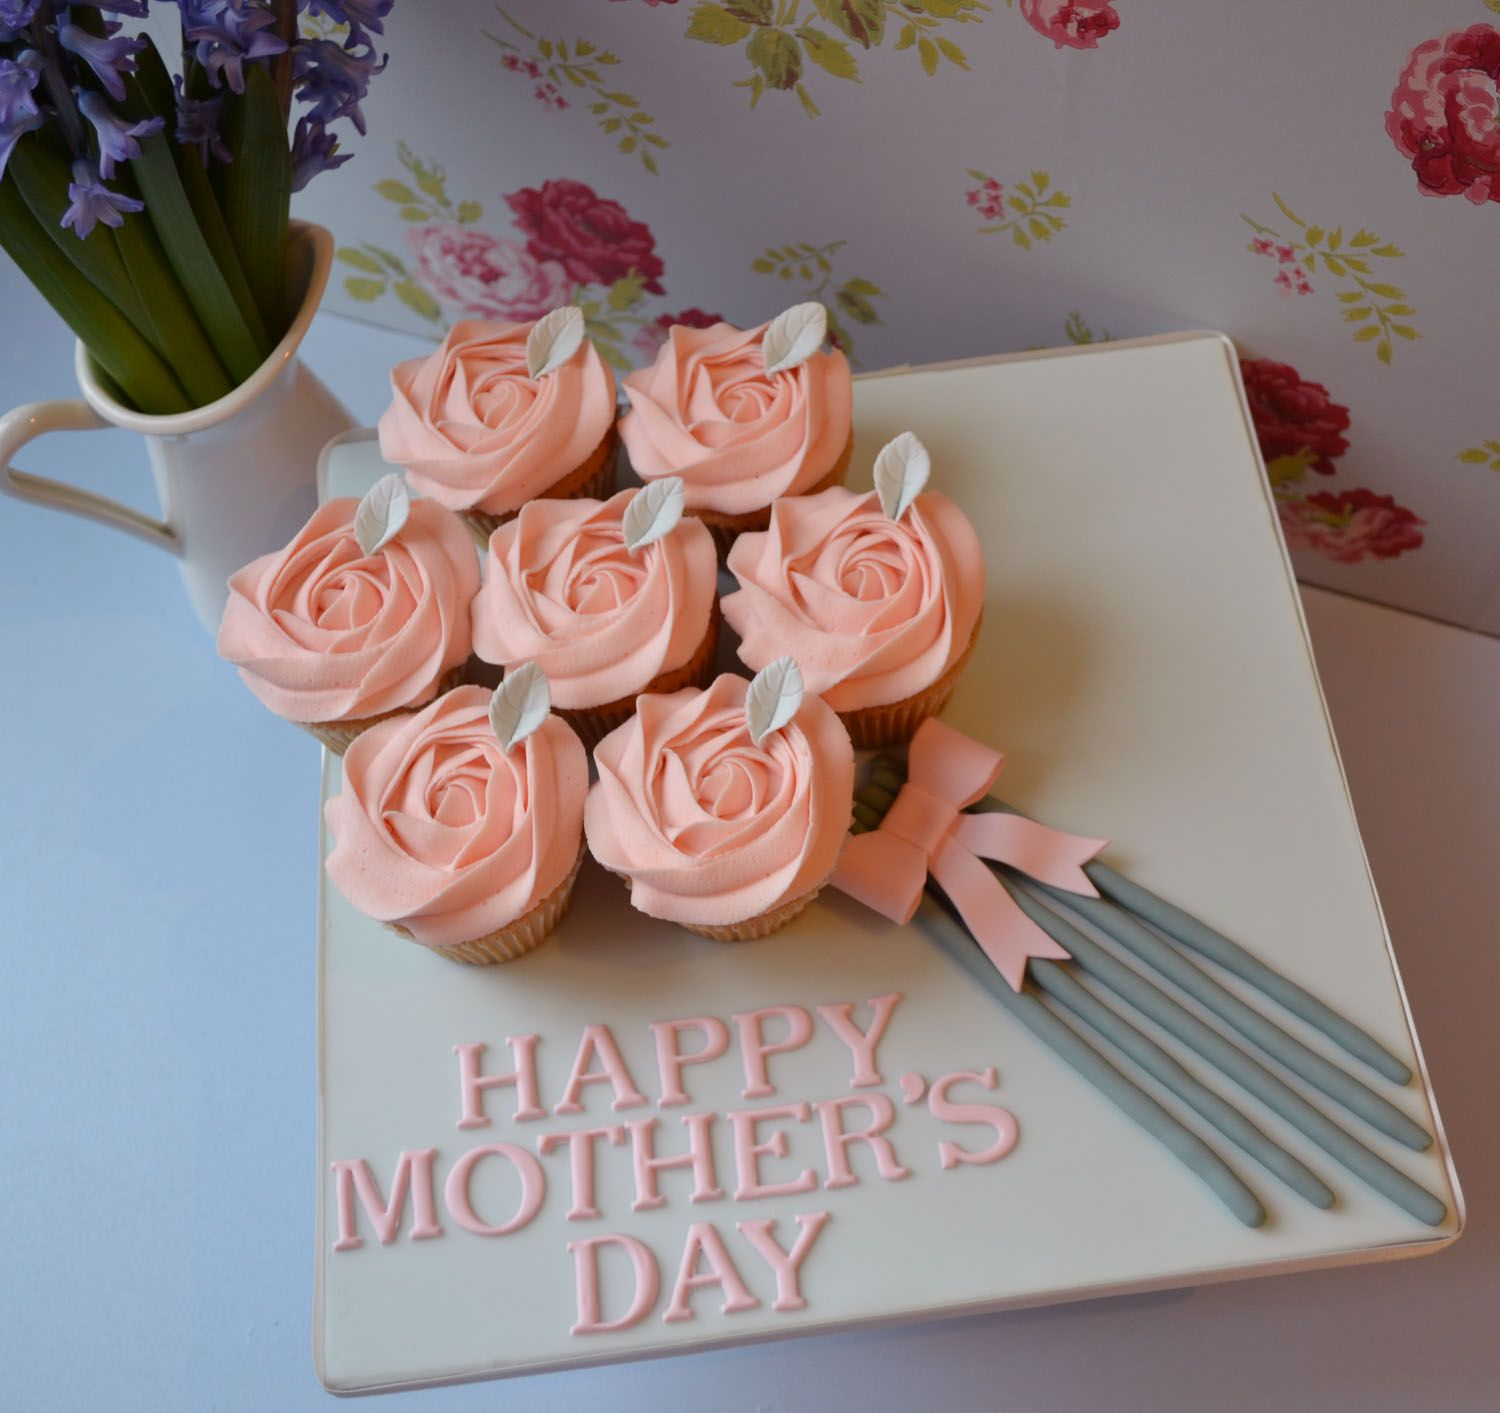 best images about motherus day on pinterest free mothers day